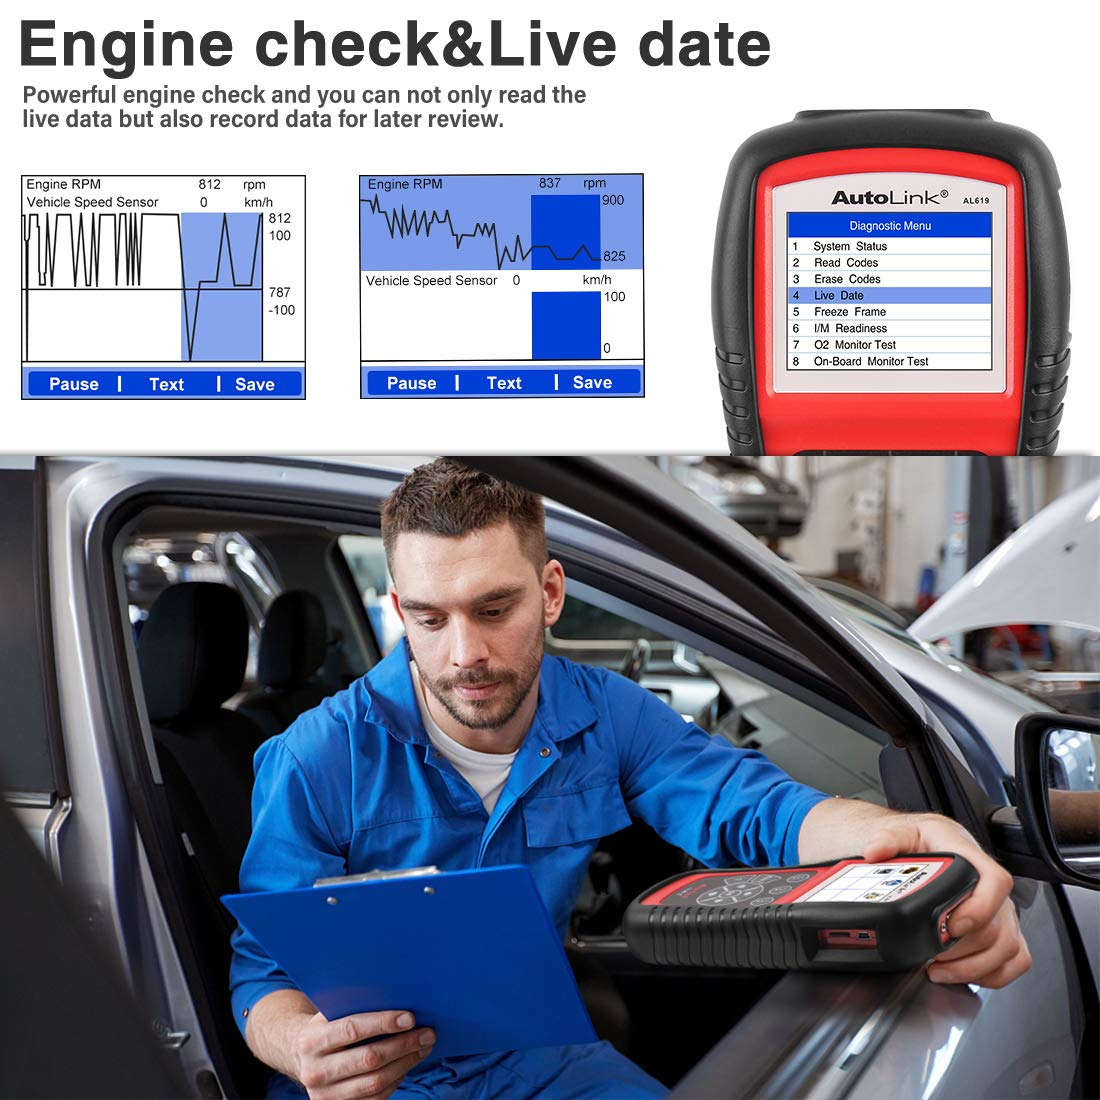 Autel AutoLink AL619 OBD2 Scanner ABS/SRS Diagnostic Scan Tool,Turns Off Engine Light (MIL) and ABS/SRS Warning Lights,Same Function as The ML619 Code Reader by Autel (Image #4)